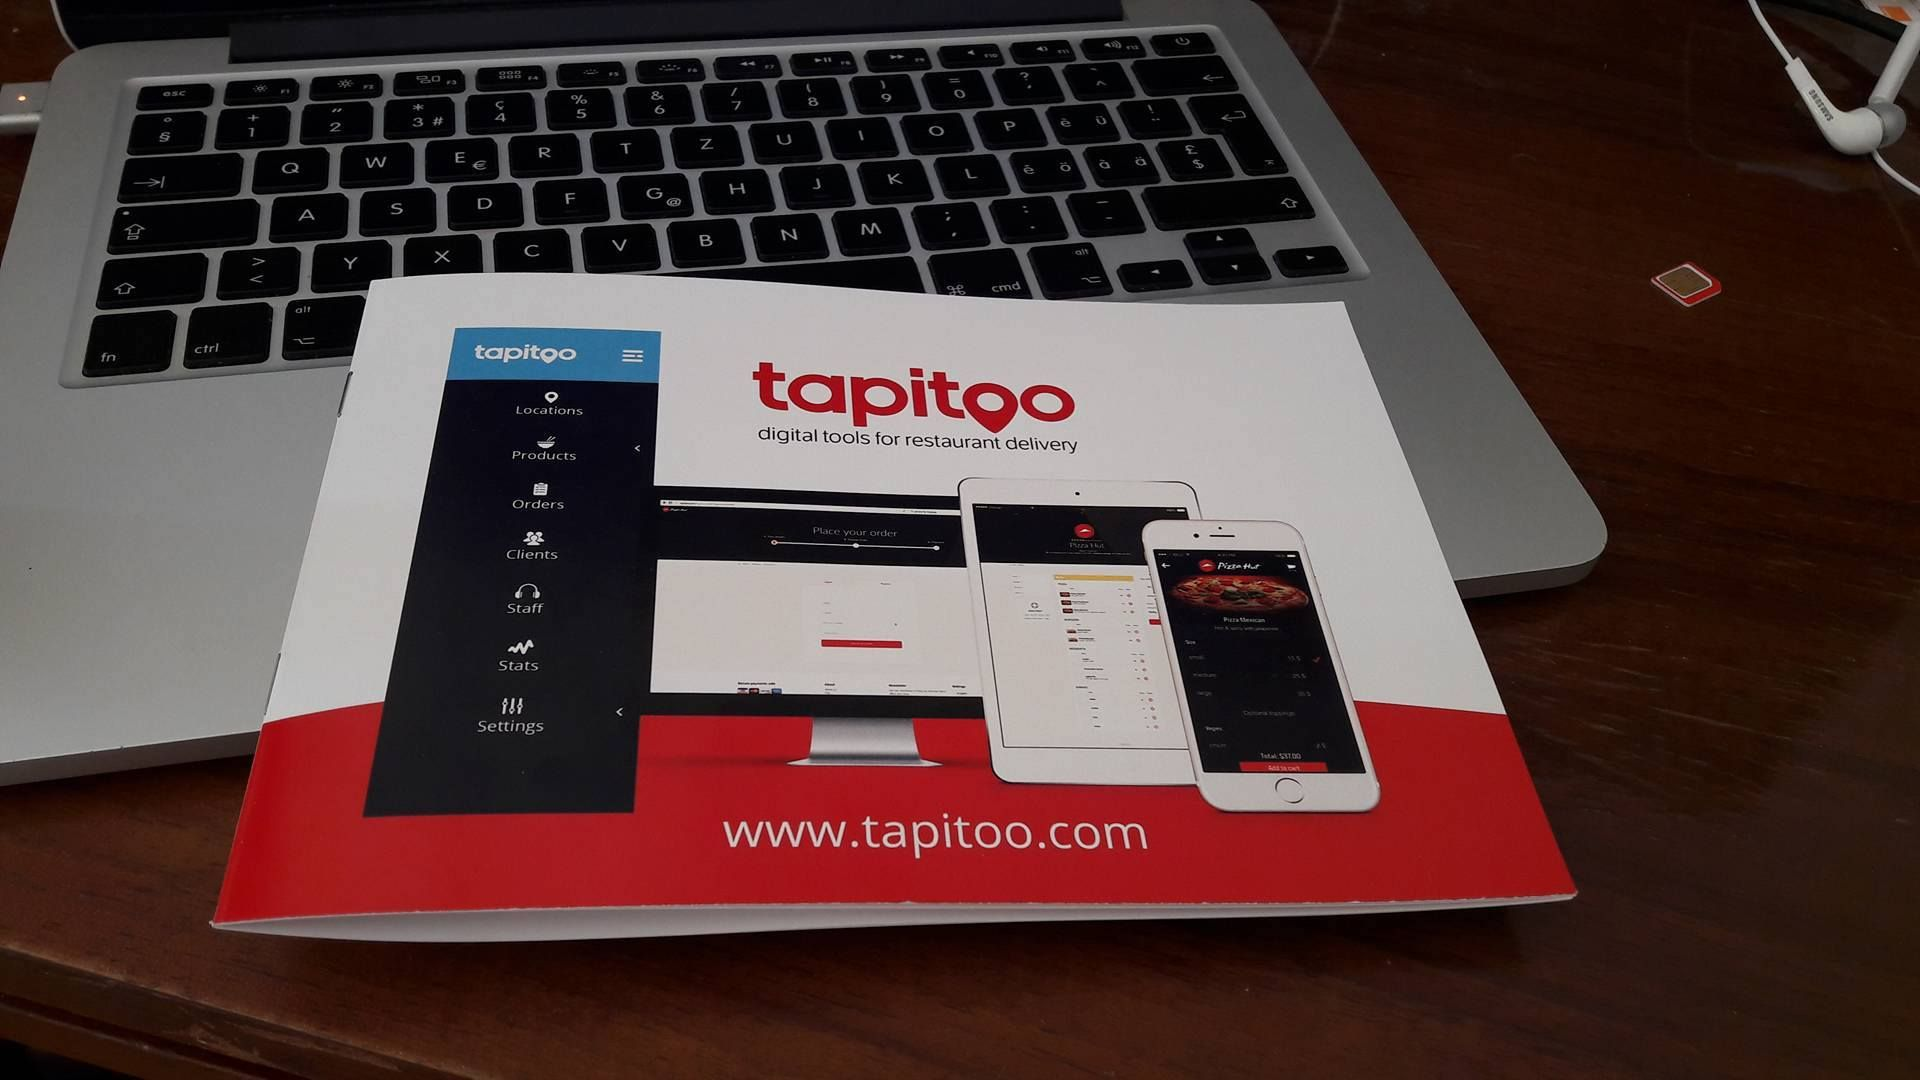 Tapitoo - Restaurant Delivery Order Platform Screenshot 1